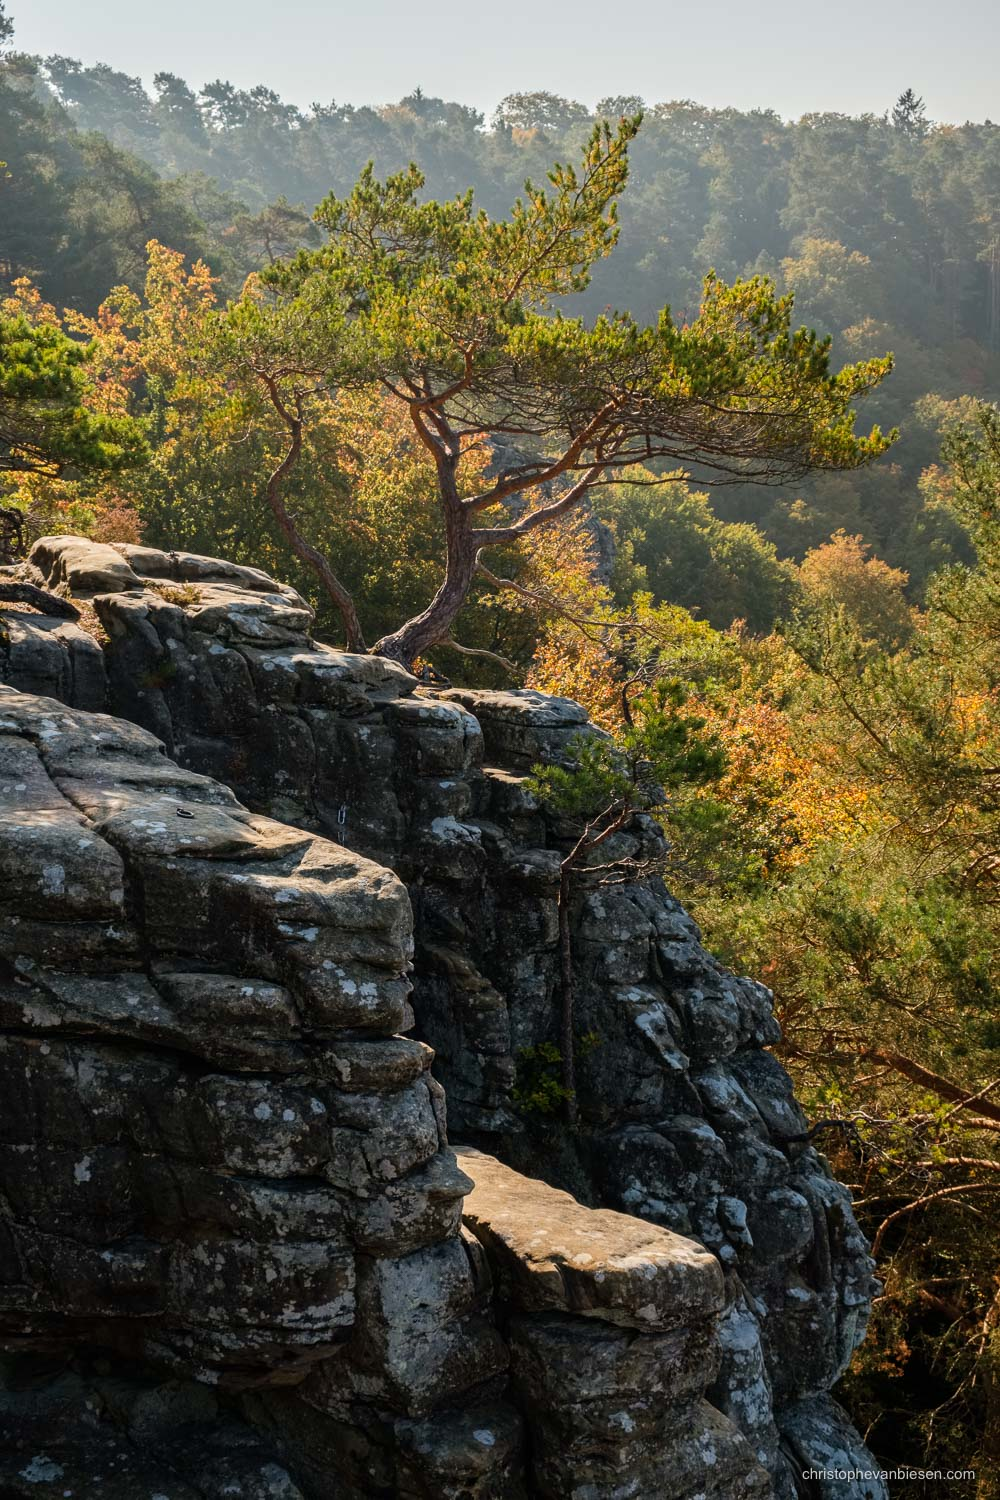 Visit the Mullerthal - Luxembourg - Fall high above the Mullerthal region in Luxembourg - Mullerthal Heights